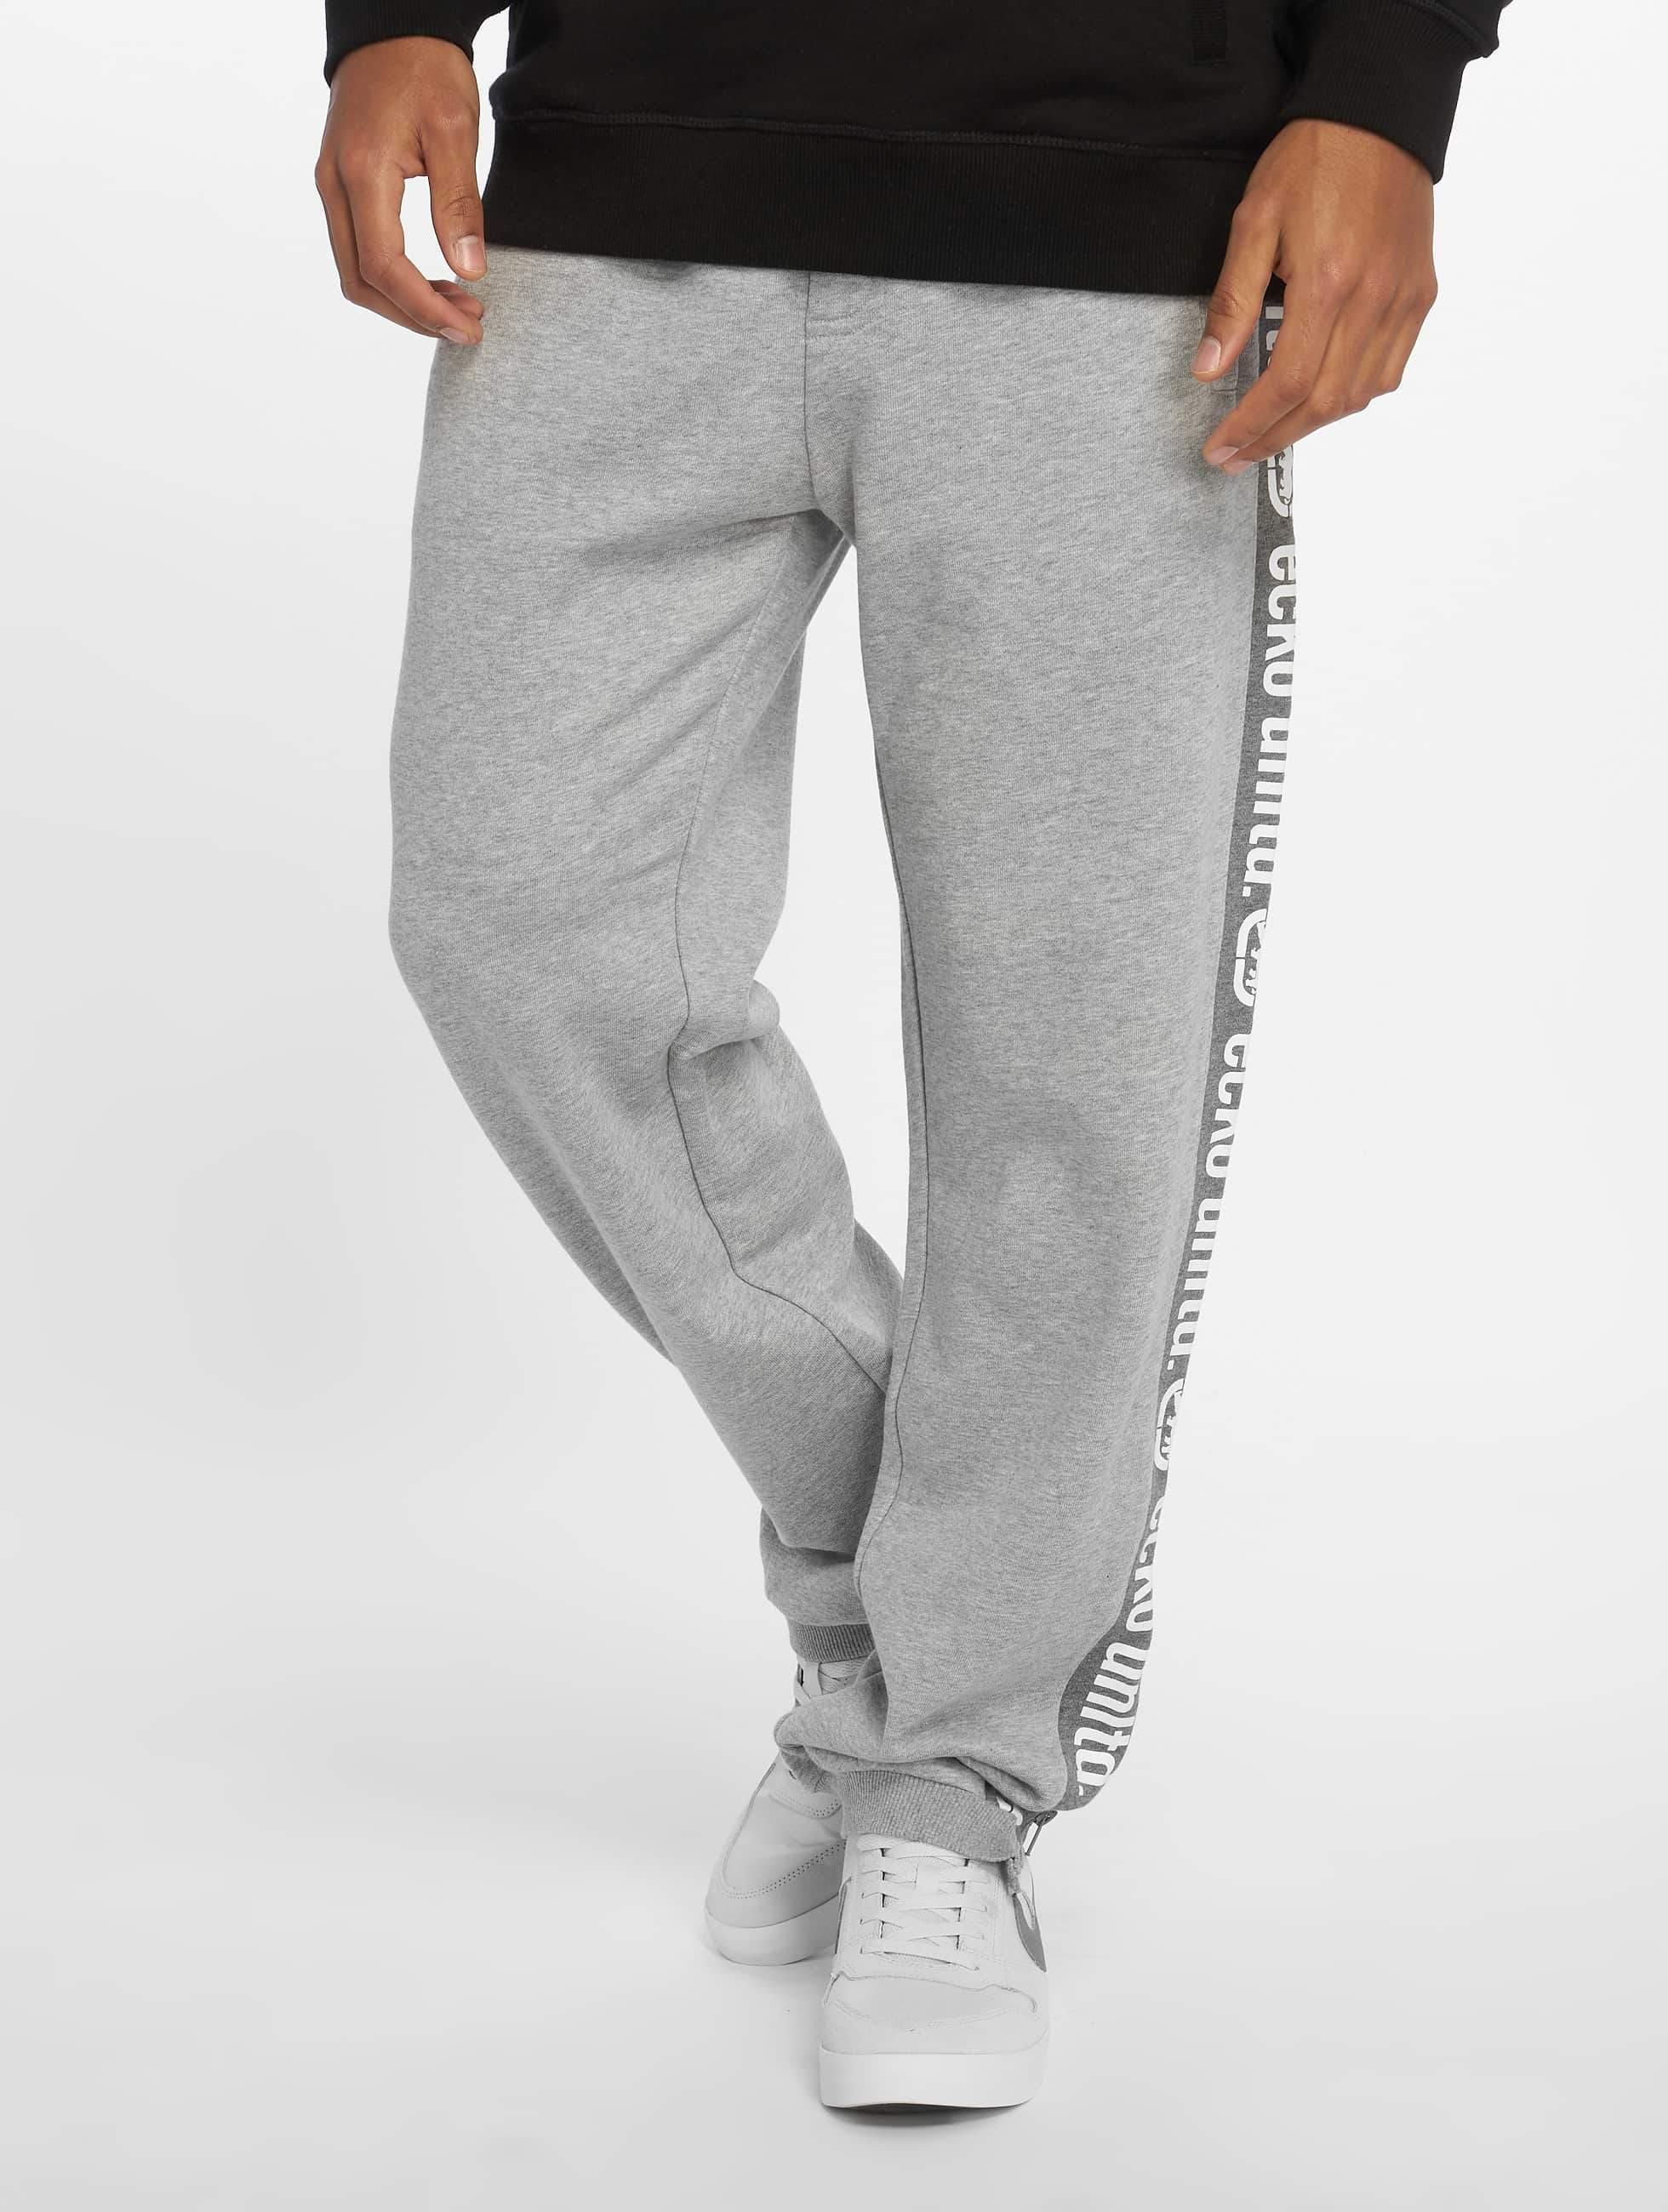 Ecko Unltd. / Sweat Pant Humphreys in grey S